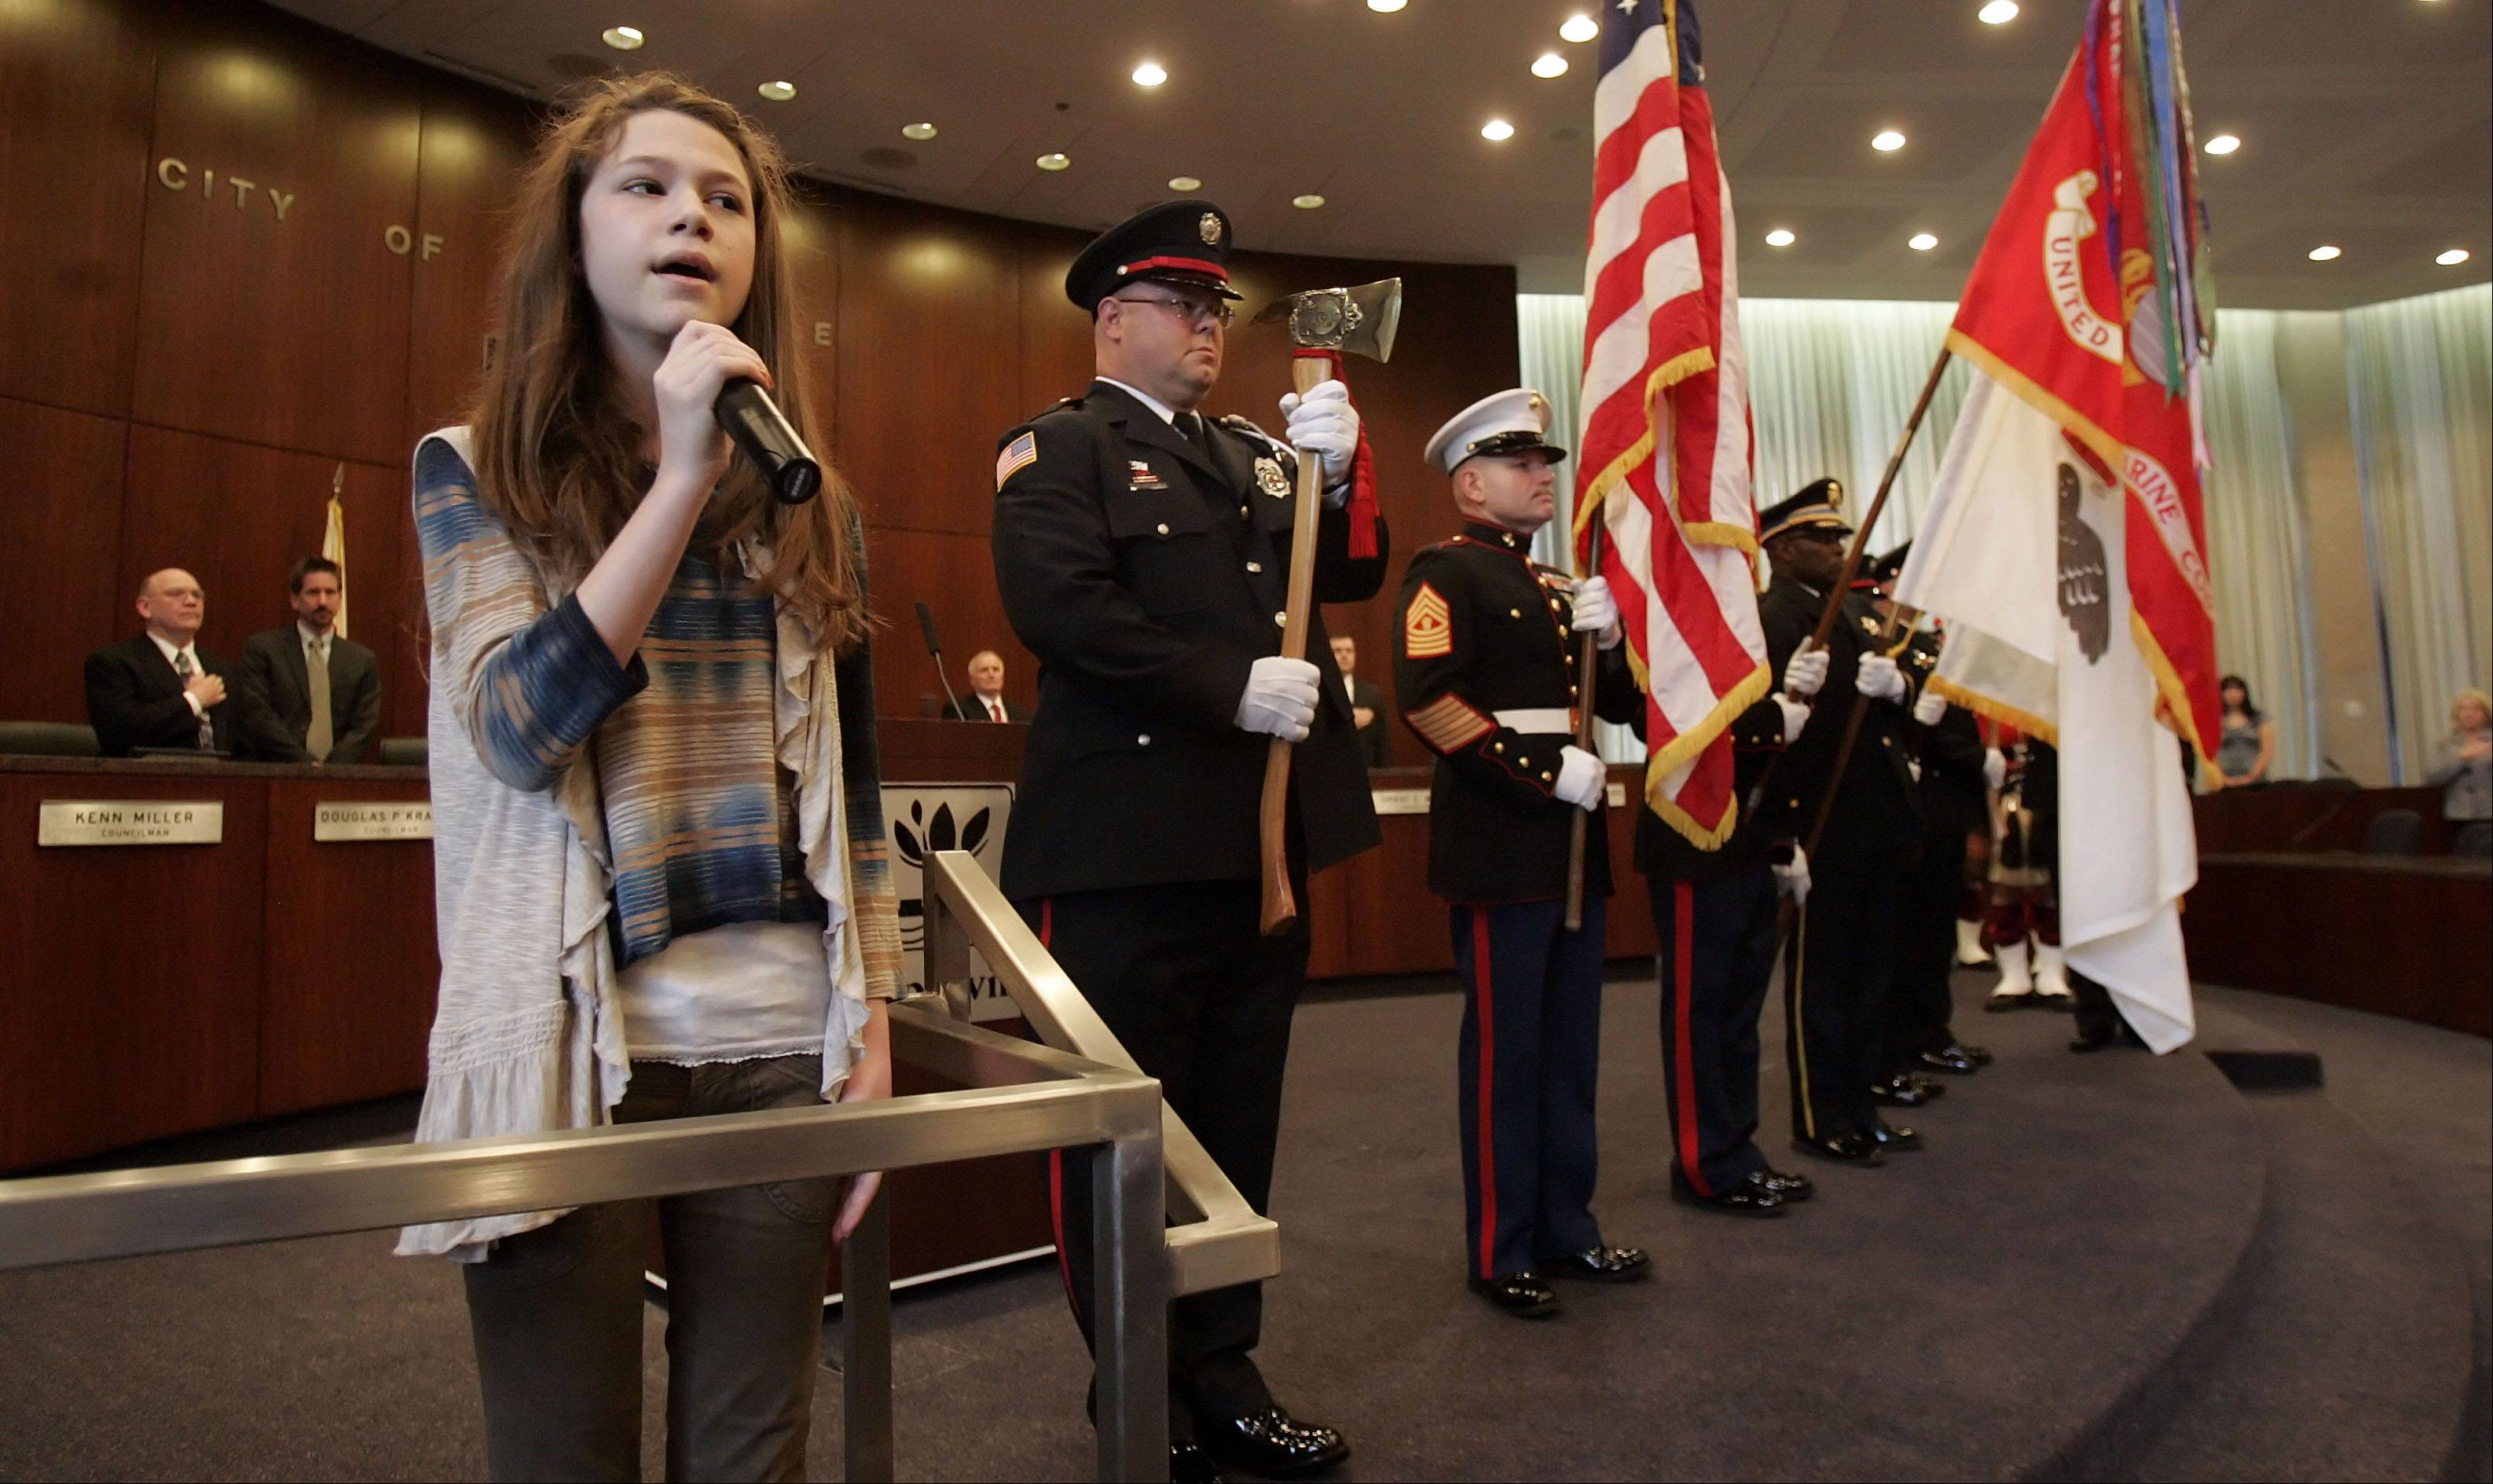 Last year, Shealeigh Voitl, 13, of Barlett, sang the national anthem during the inauguration ceremony in the council chambers of the Naperville Municipal Center.